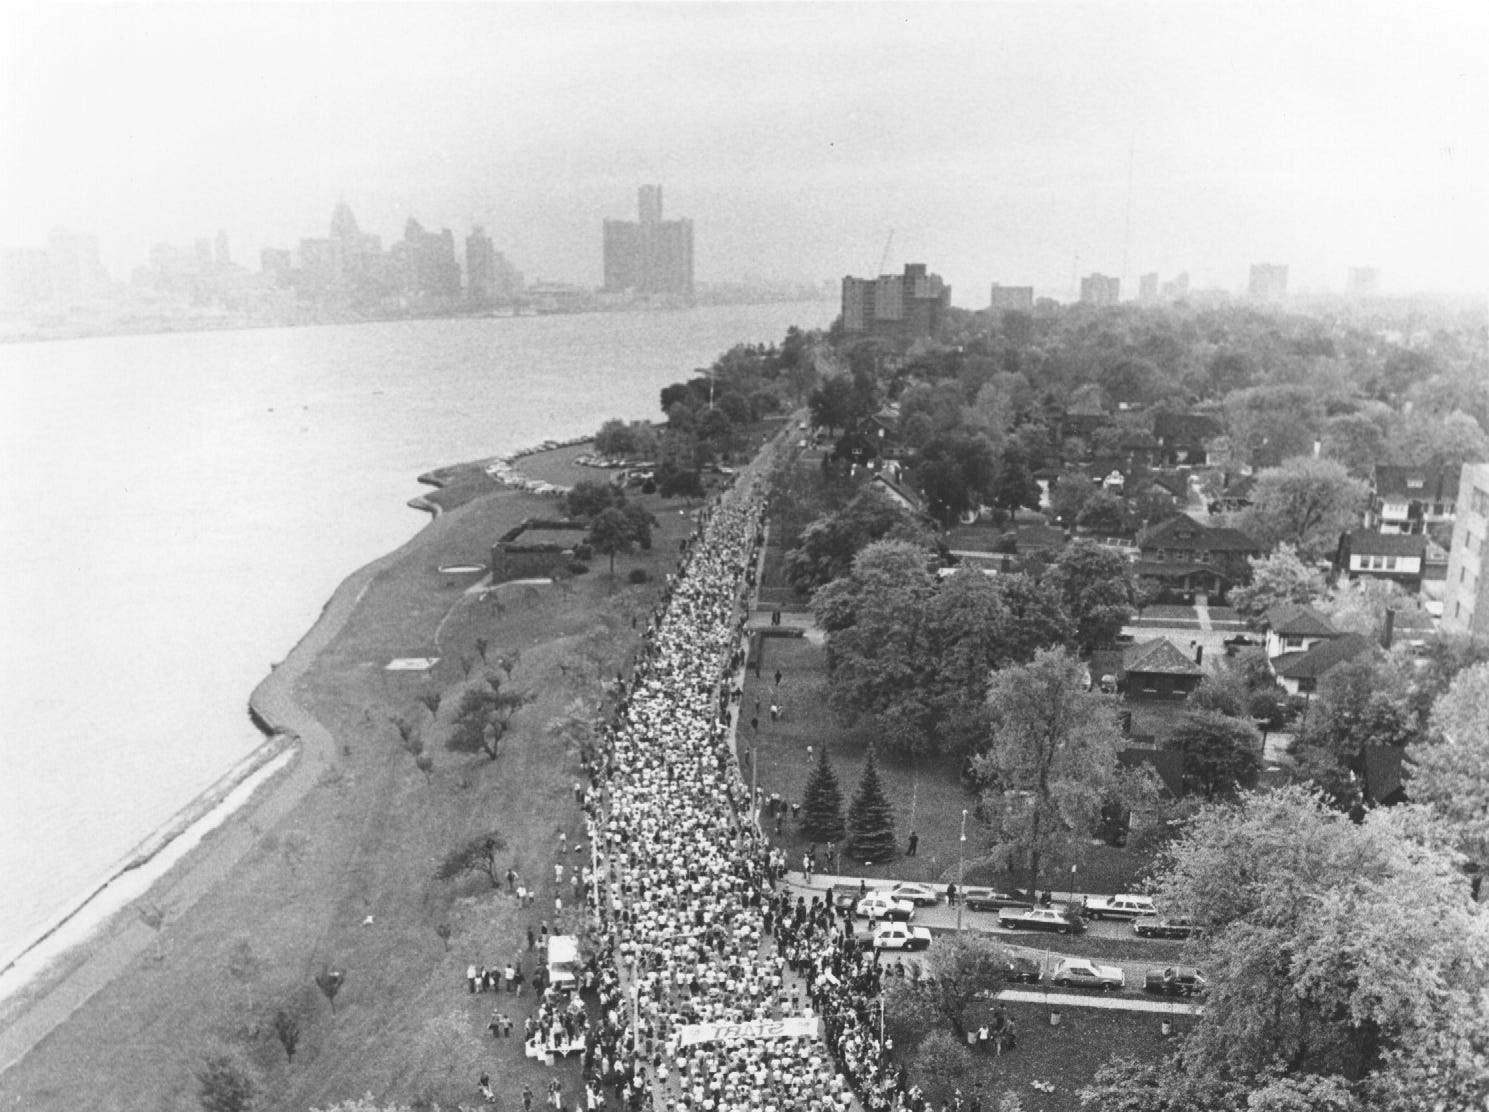 View of Detroit from the Windsor start of the Free Press International Marathon in 1978.